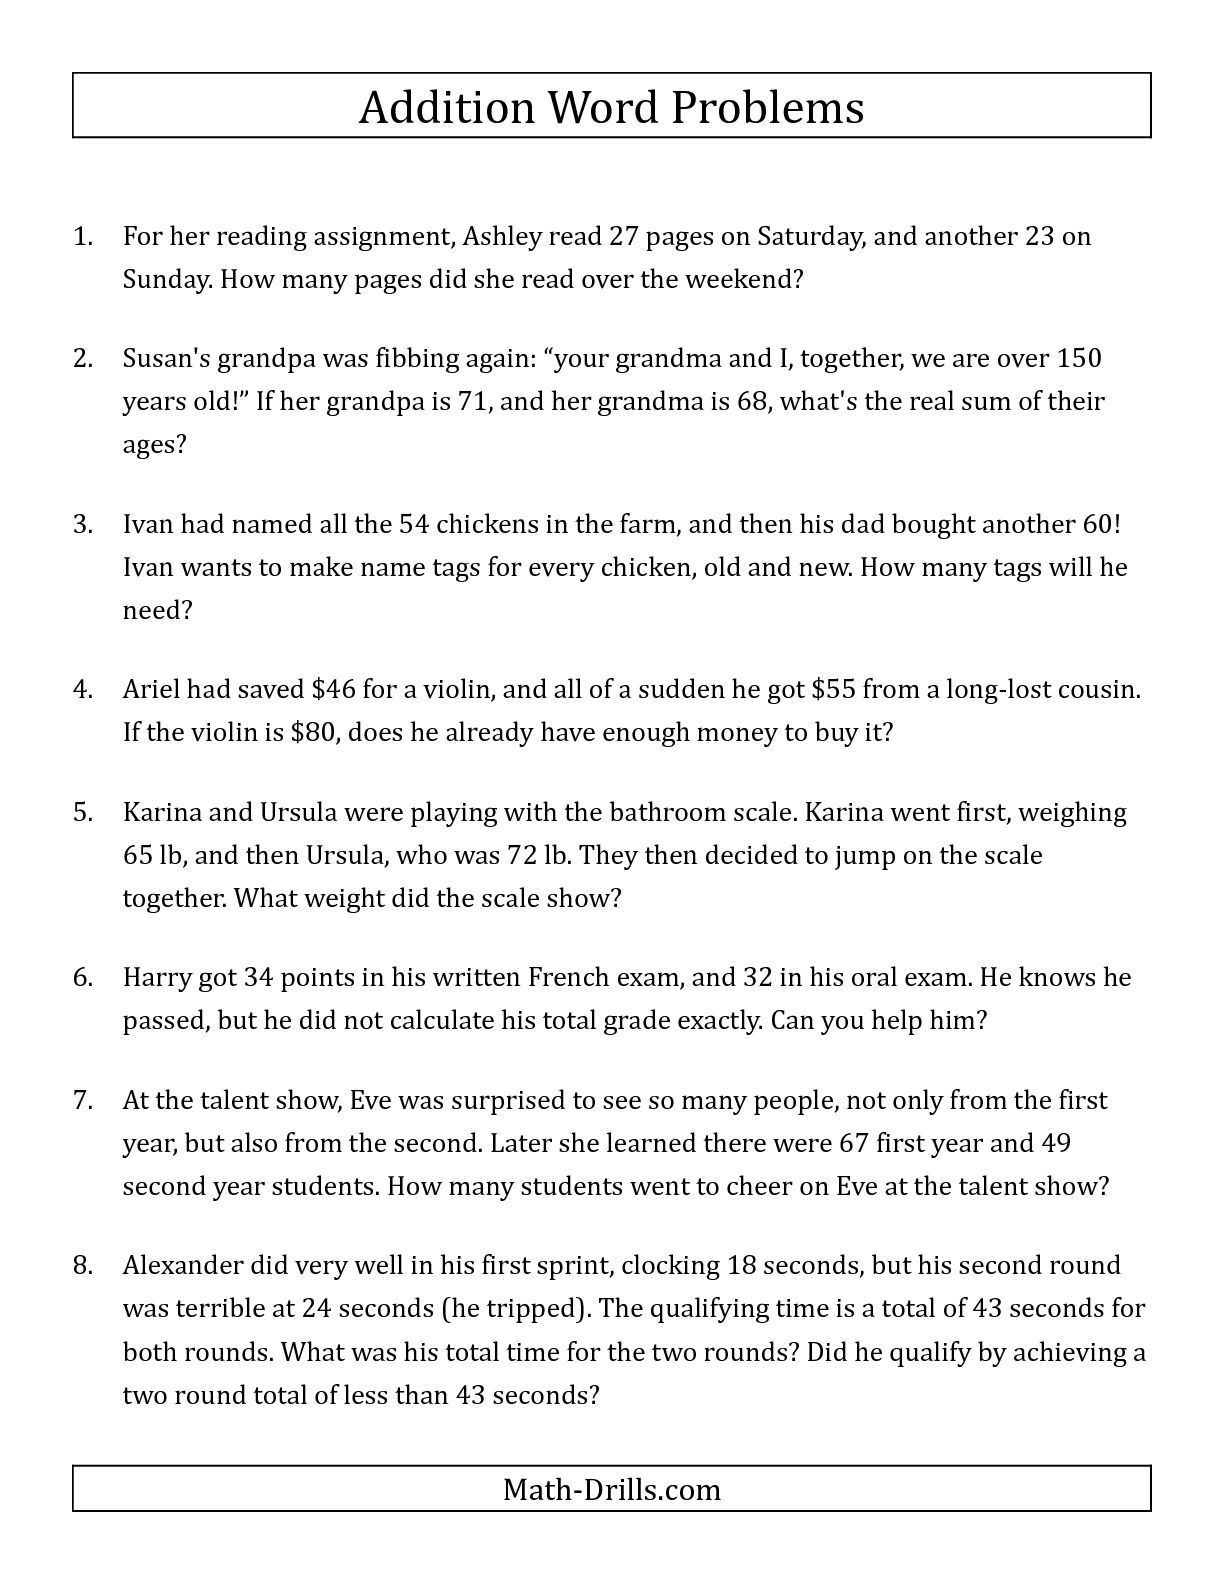 Single Step Addition Word Problems Using Two Digit Numbers A Word Problems Worksheet Addition Word Problems Addition Words Math Word Problems